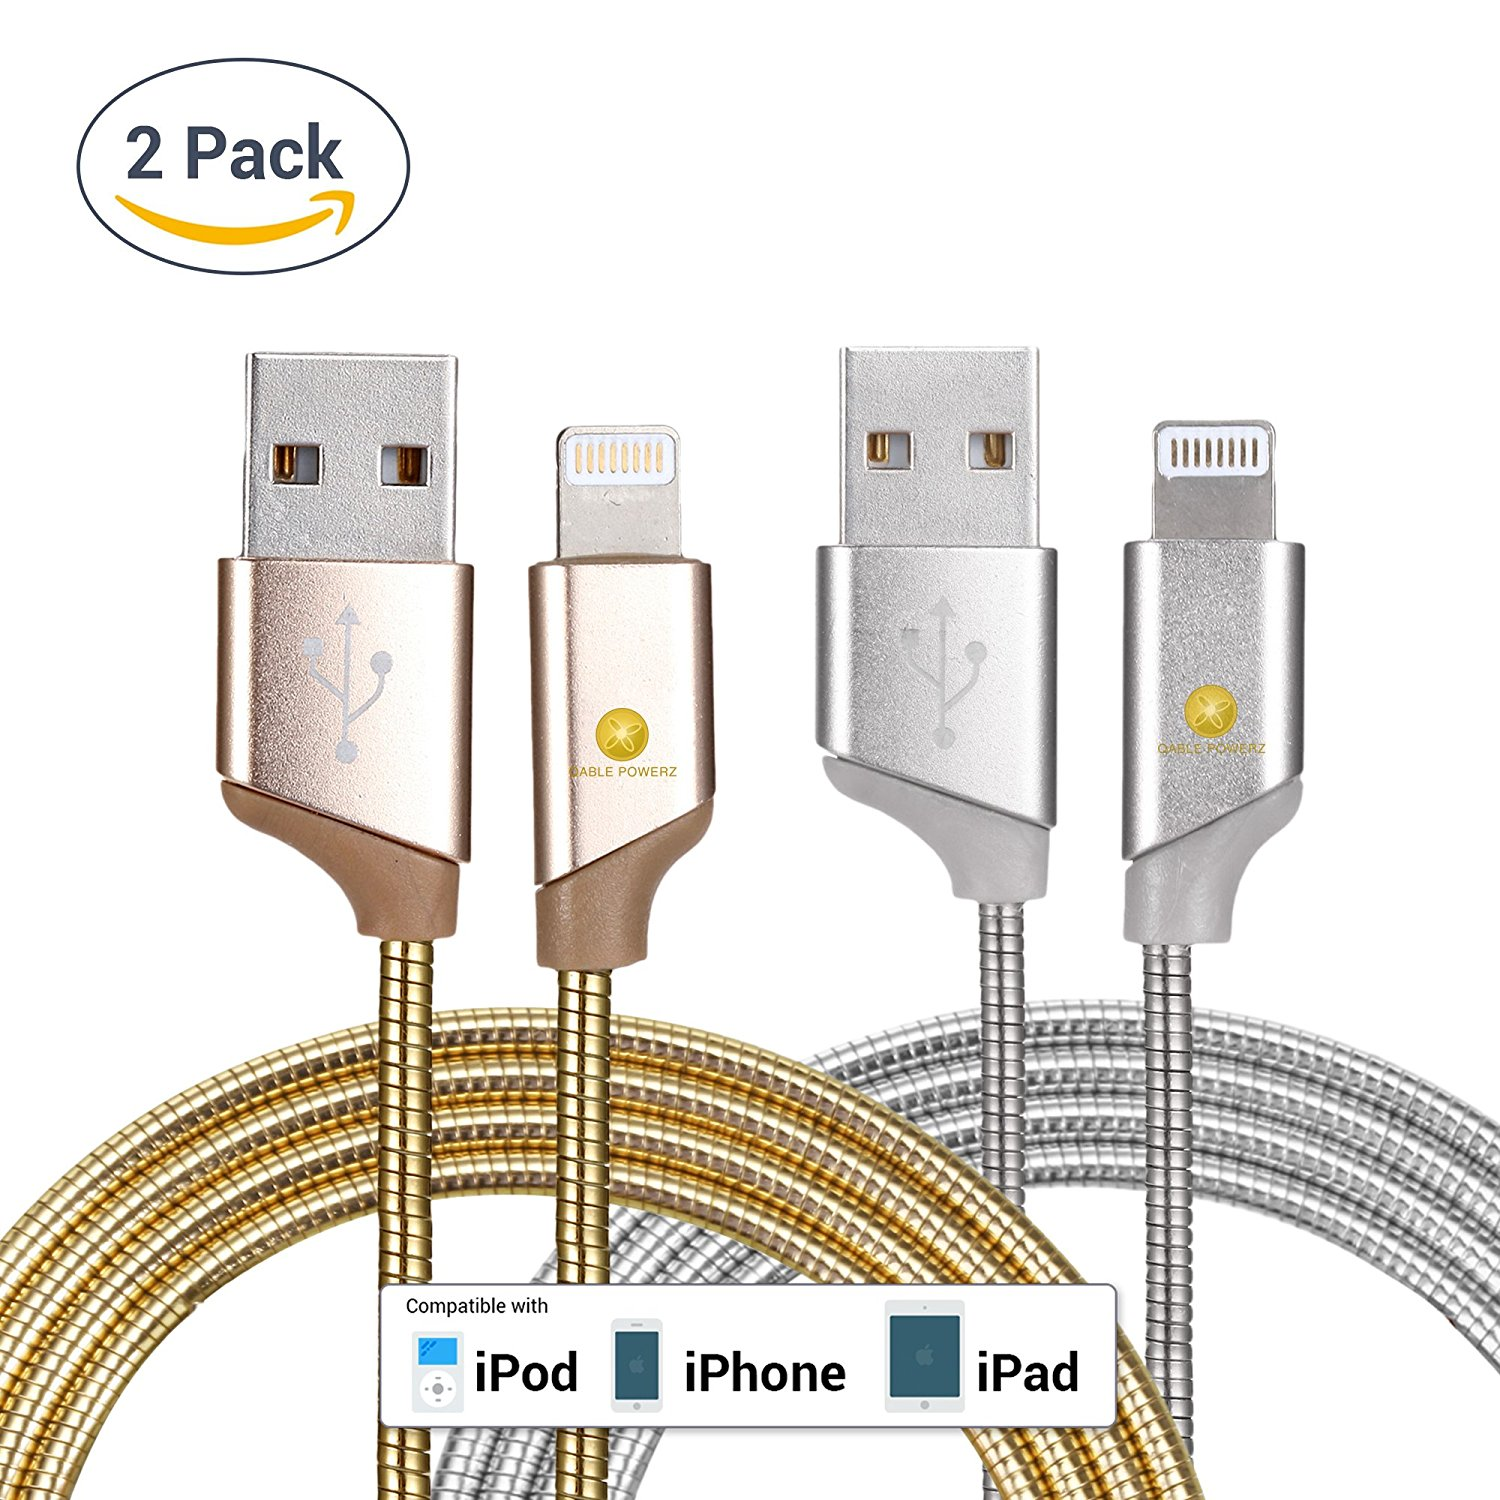 2pk New Ultra Super-Fast Heavy Duty 3Ft (1M) 2pk 8-Pin Lightning Metal Spring Cord Charging Cable High Speed USB 3.0 Sync Cable for iPhone 7, 6, 6 Plus – Gold Silver